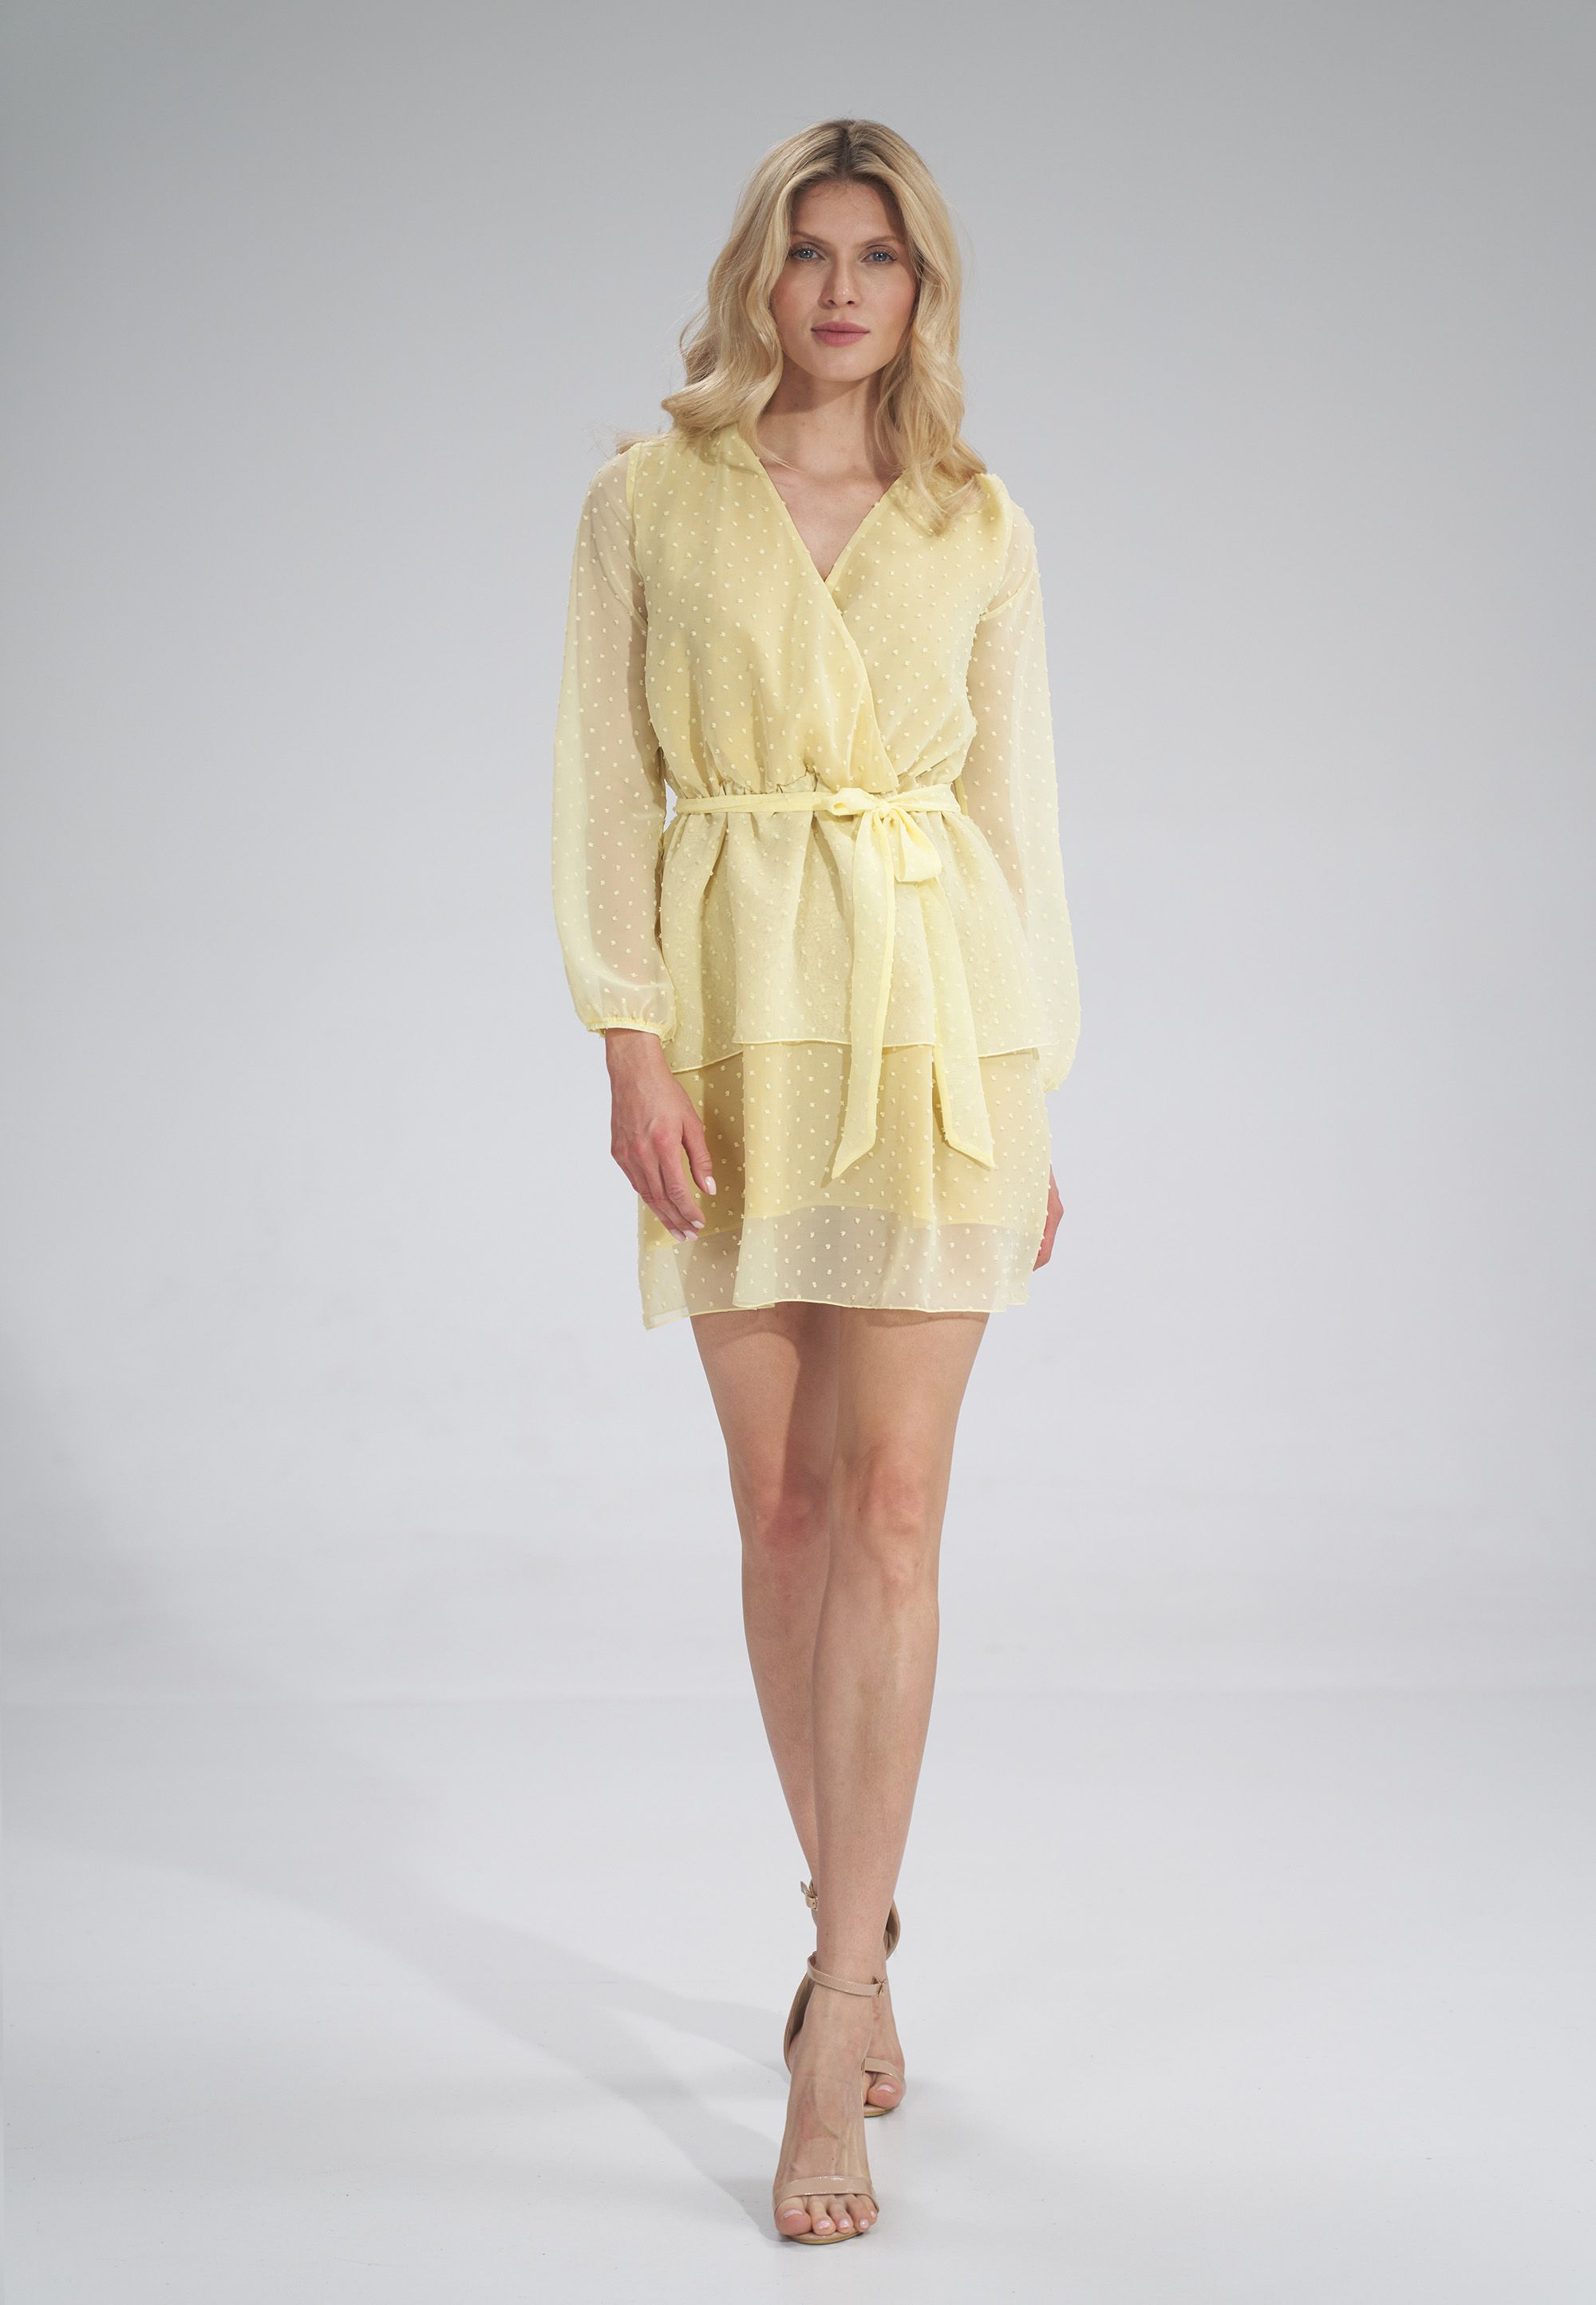 Airy chiffon dress with long sleeves